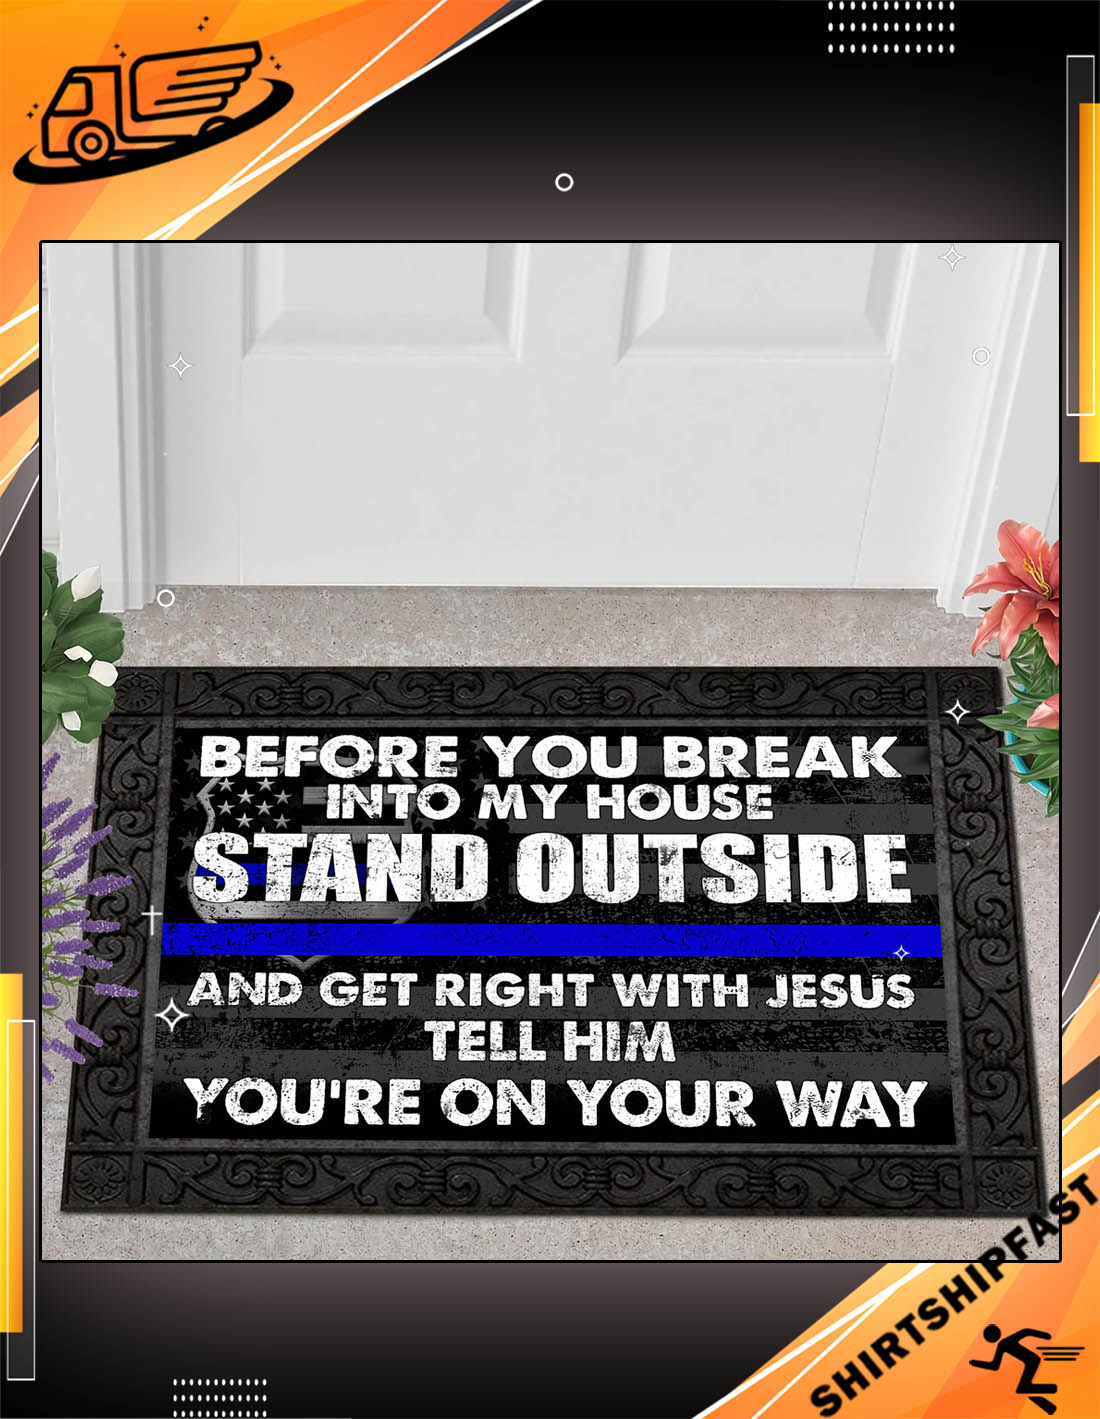 Police Before you break into my house stand outside and get right with Jesus doormat - Picture 3